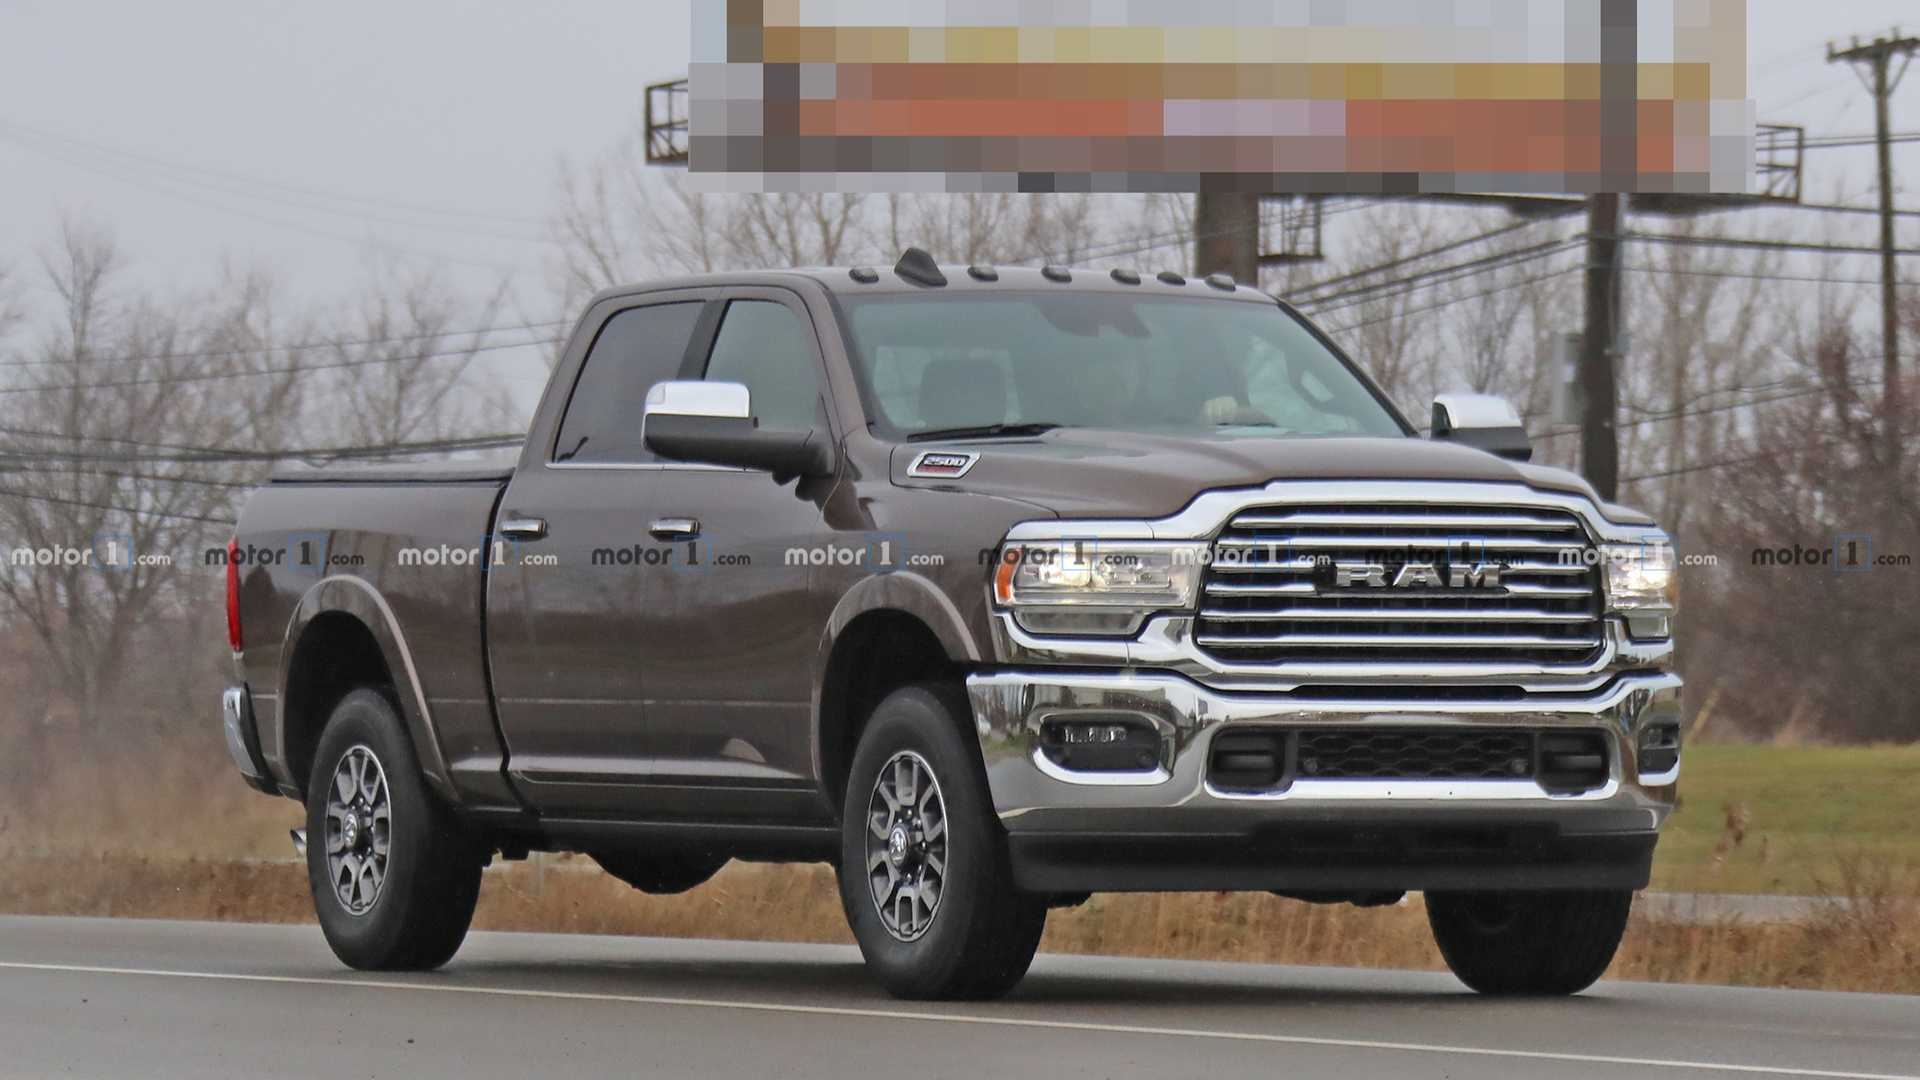 74 A Images Of 2020 Dodge Ram Spy Shoot